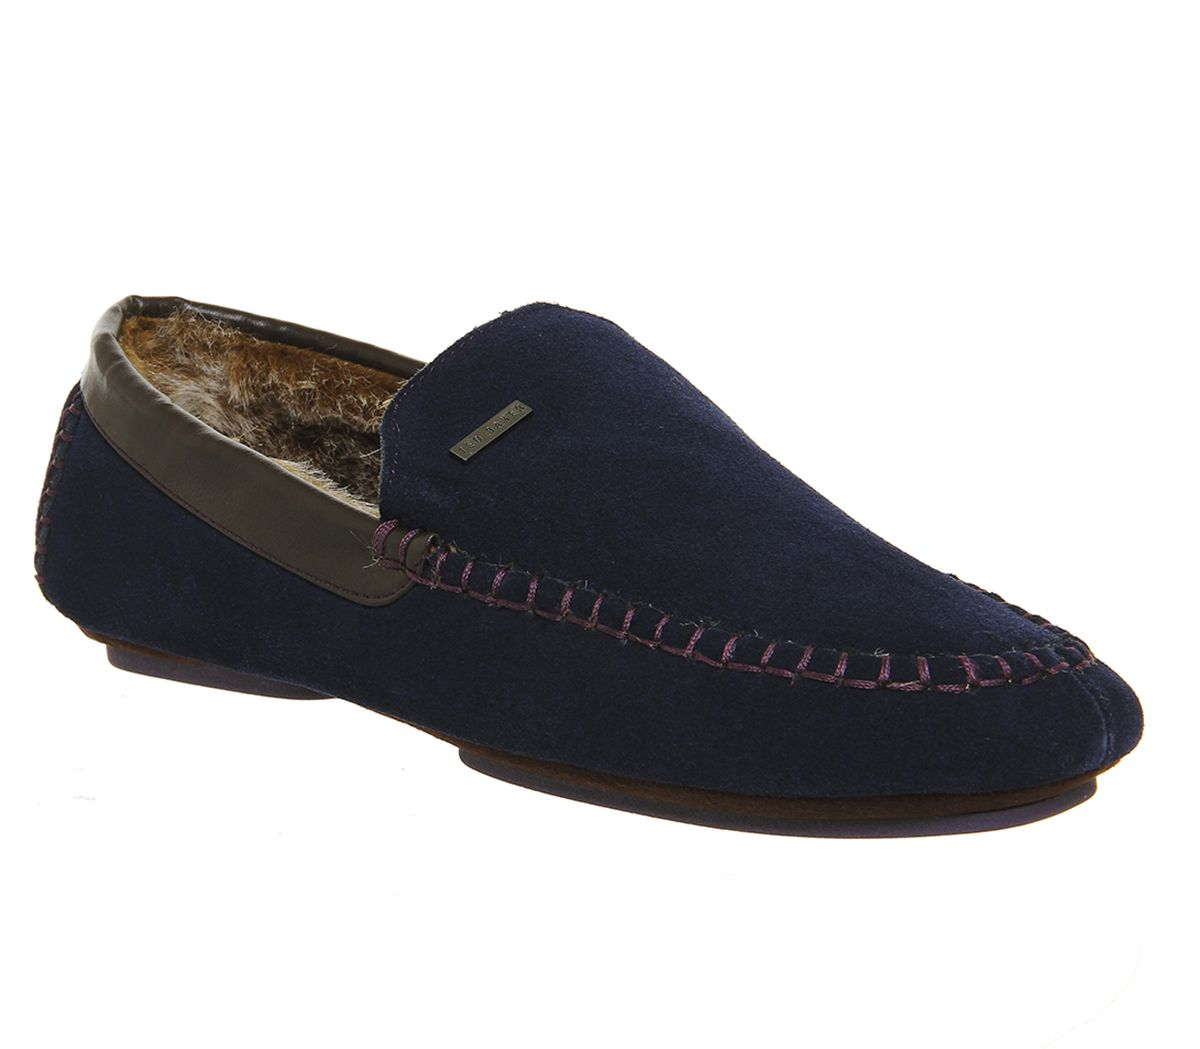 d0158b874bdb Ted Baker Moriss Slippers Dark Blue Suede - Casual